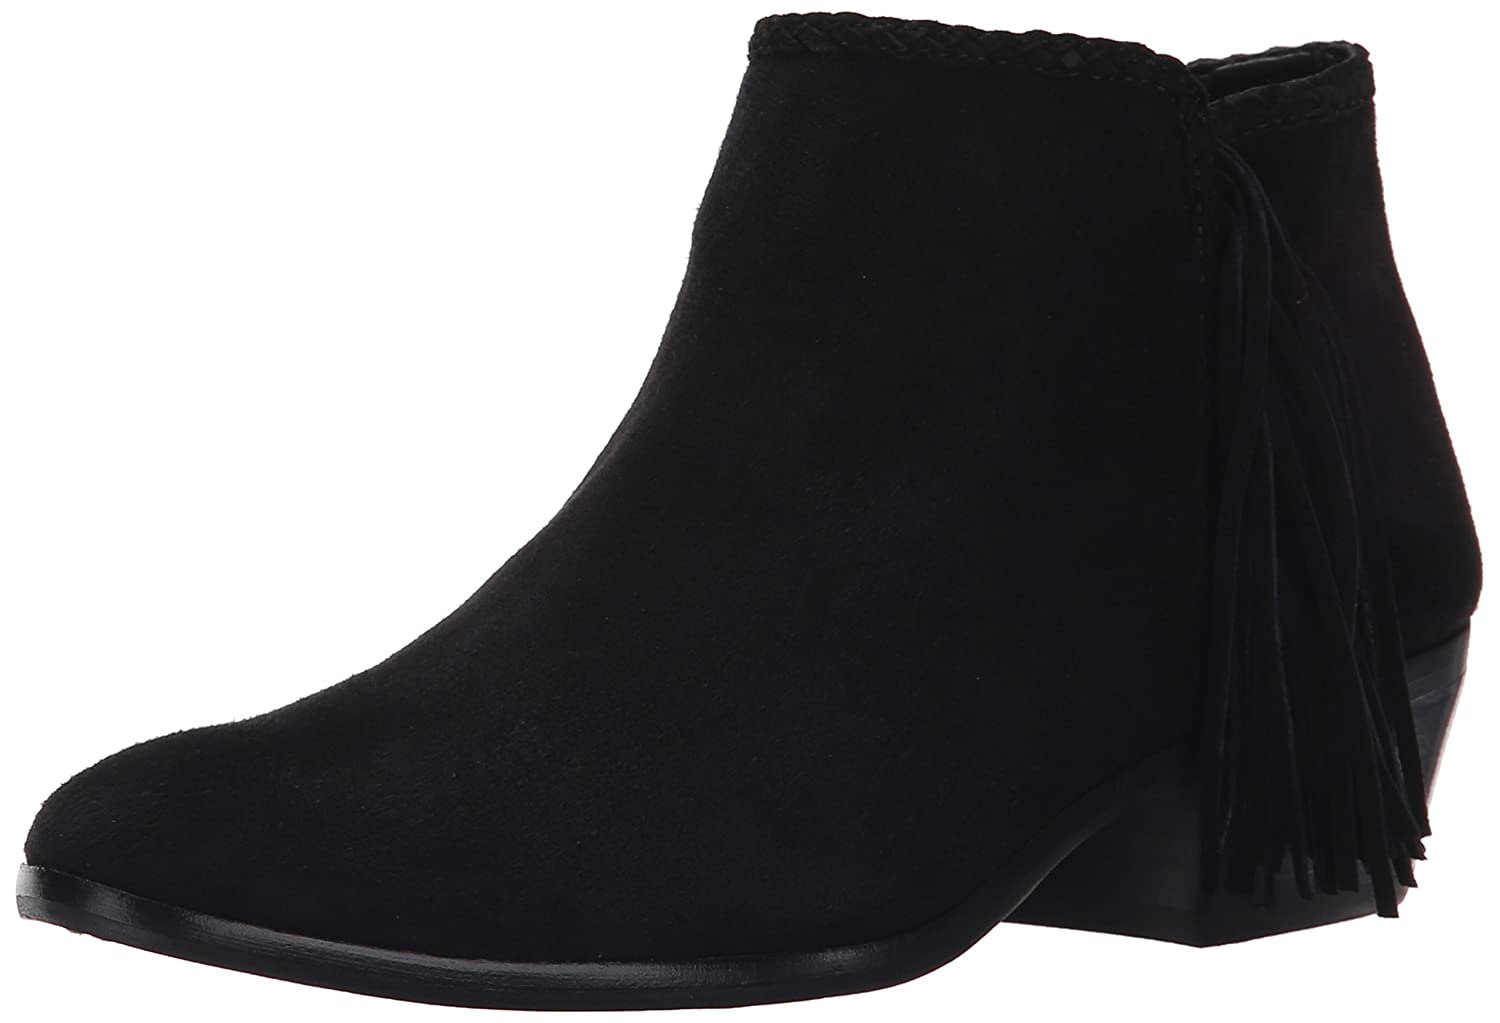 Sam Edelman Women's Paige Boot B015GIEIV2 6 B(M) US|Black